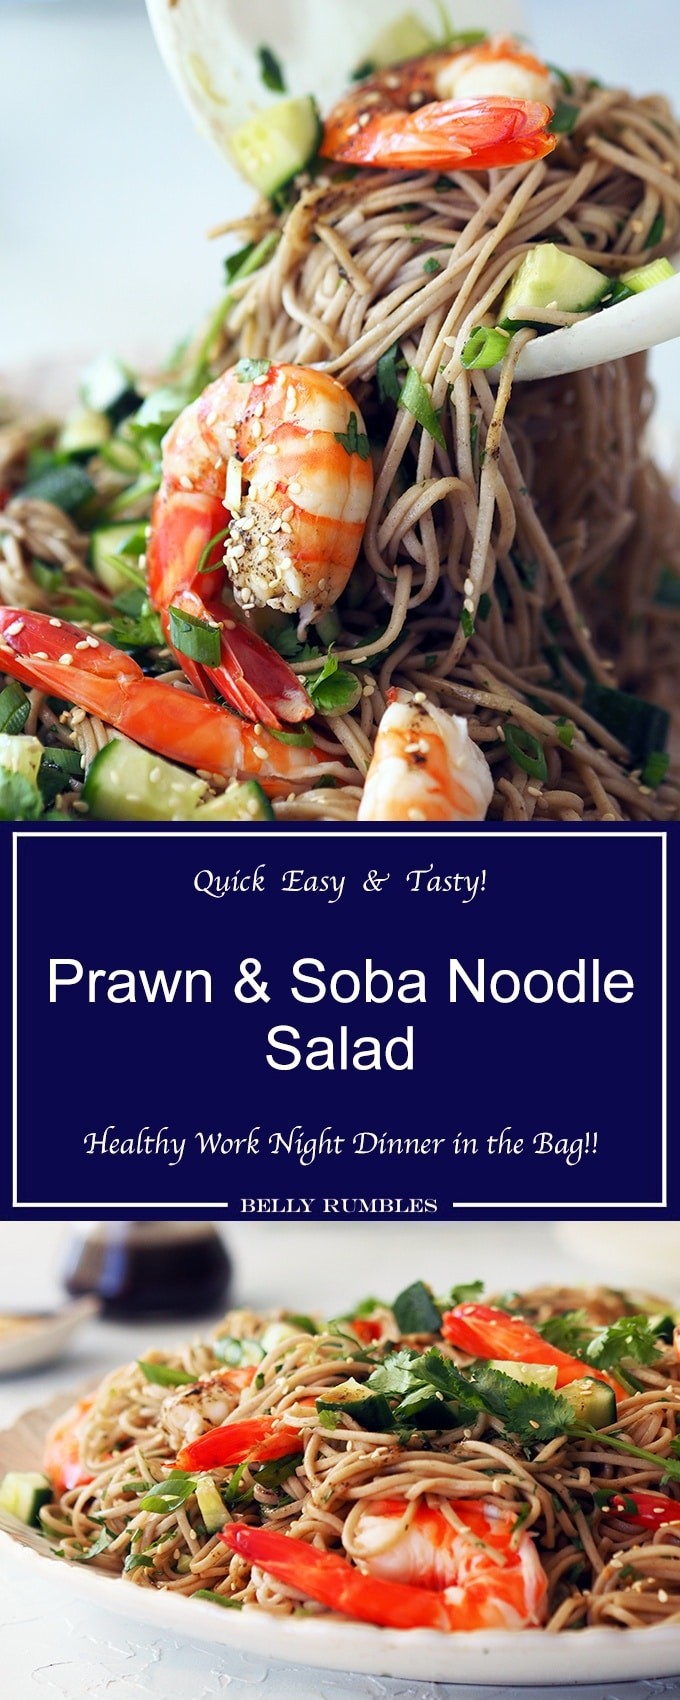 Easy prawn and soba noodle salad, with coriander and shallots. Easy mid week dinner, healthy and low fat too.